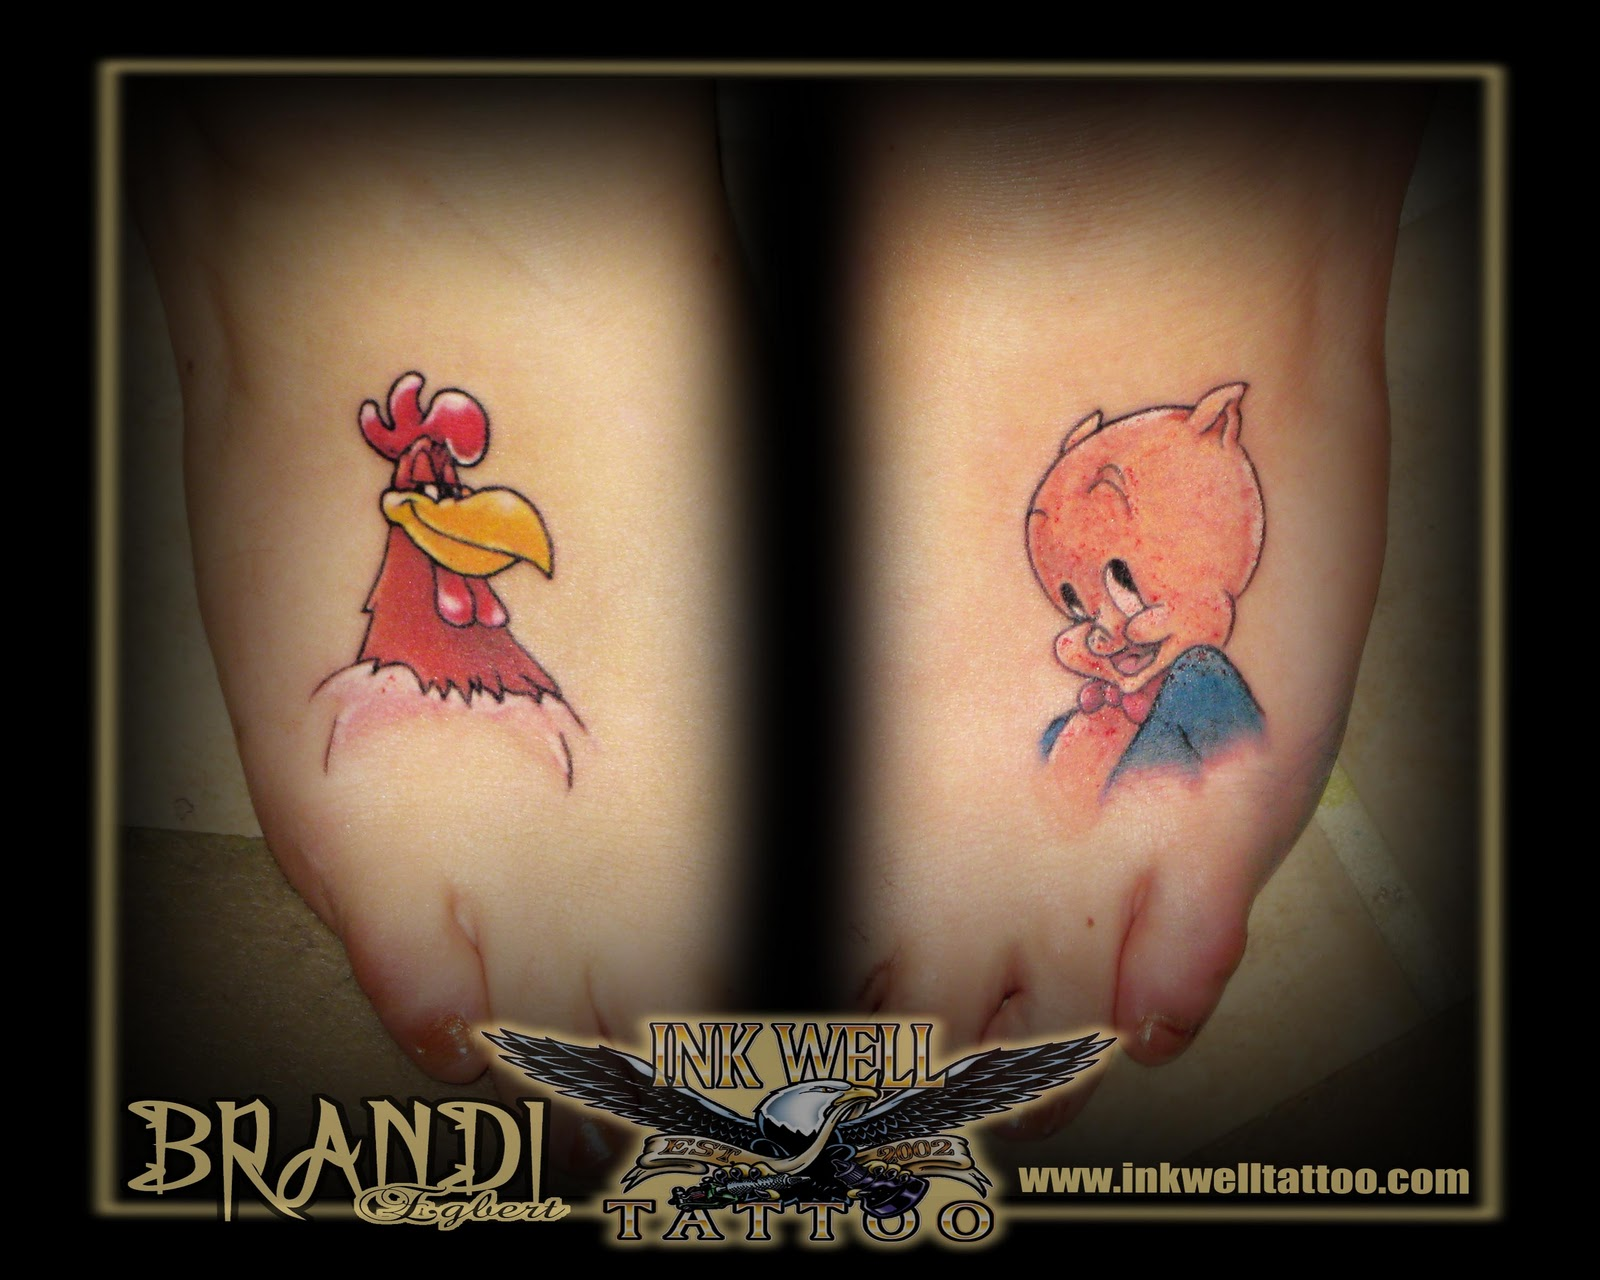 brandi egbert ink well tattoo a rooster and a pig for good luck